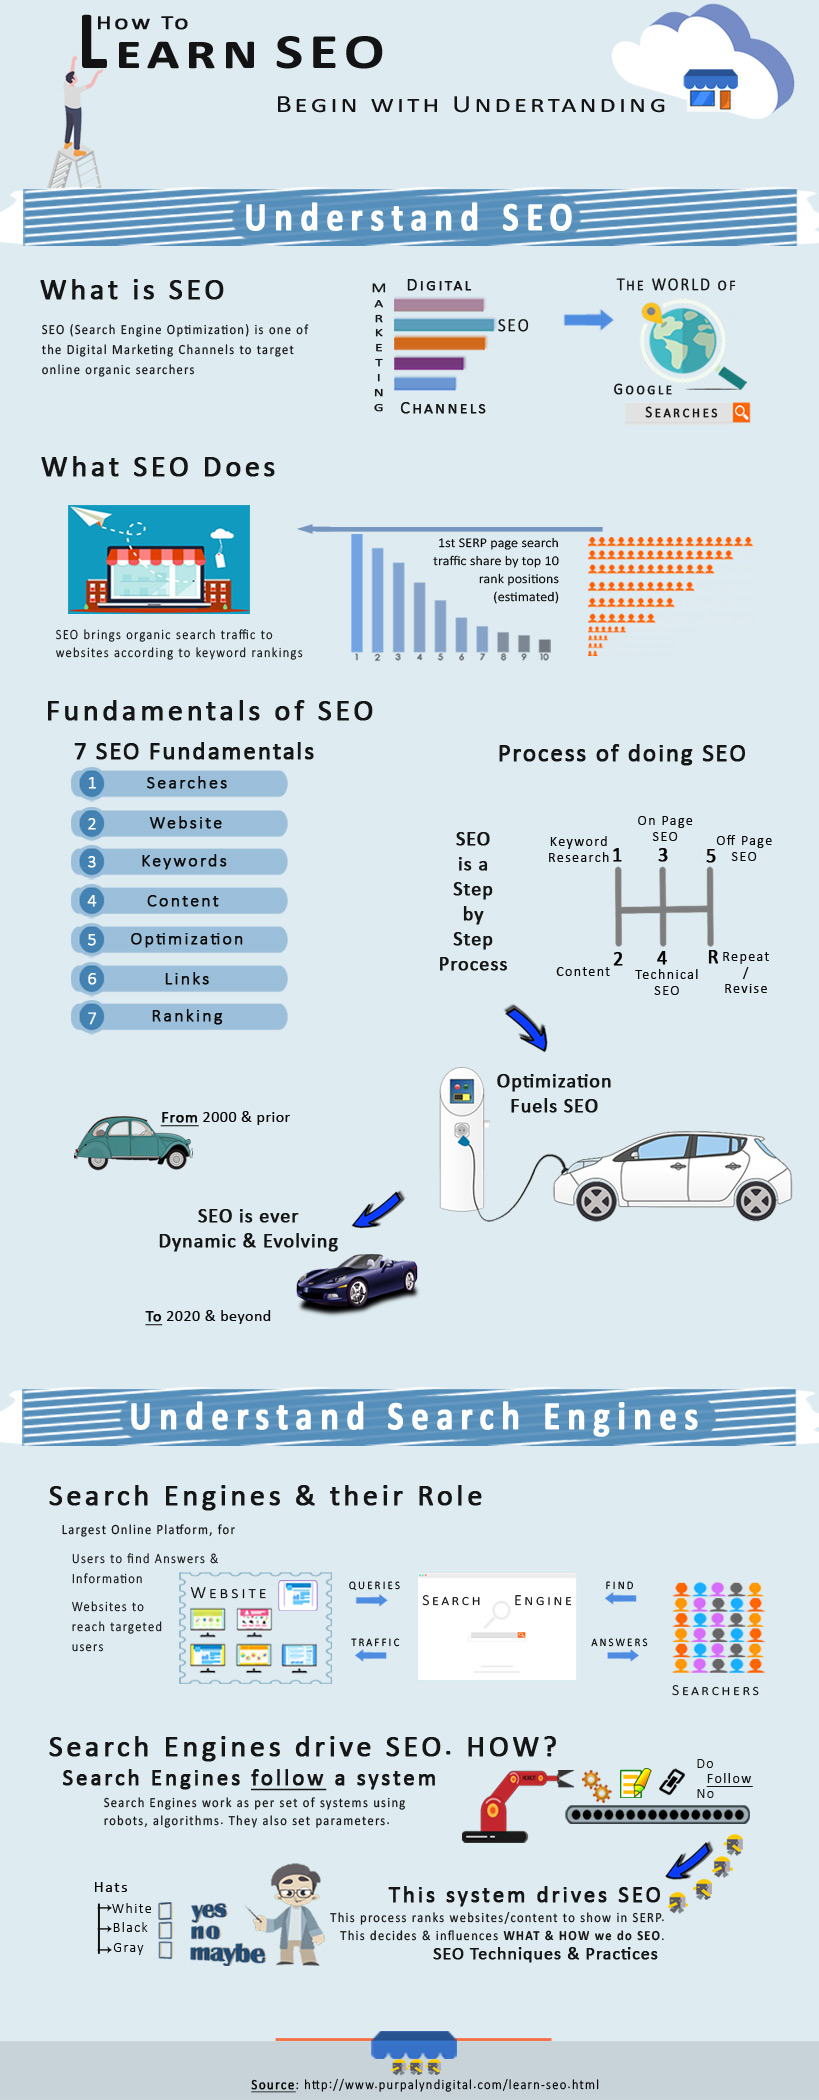 How to learn basic SEO Knowledge from scrach & fast [Infographic]